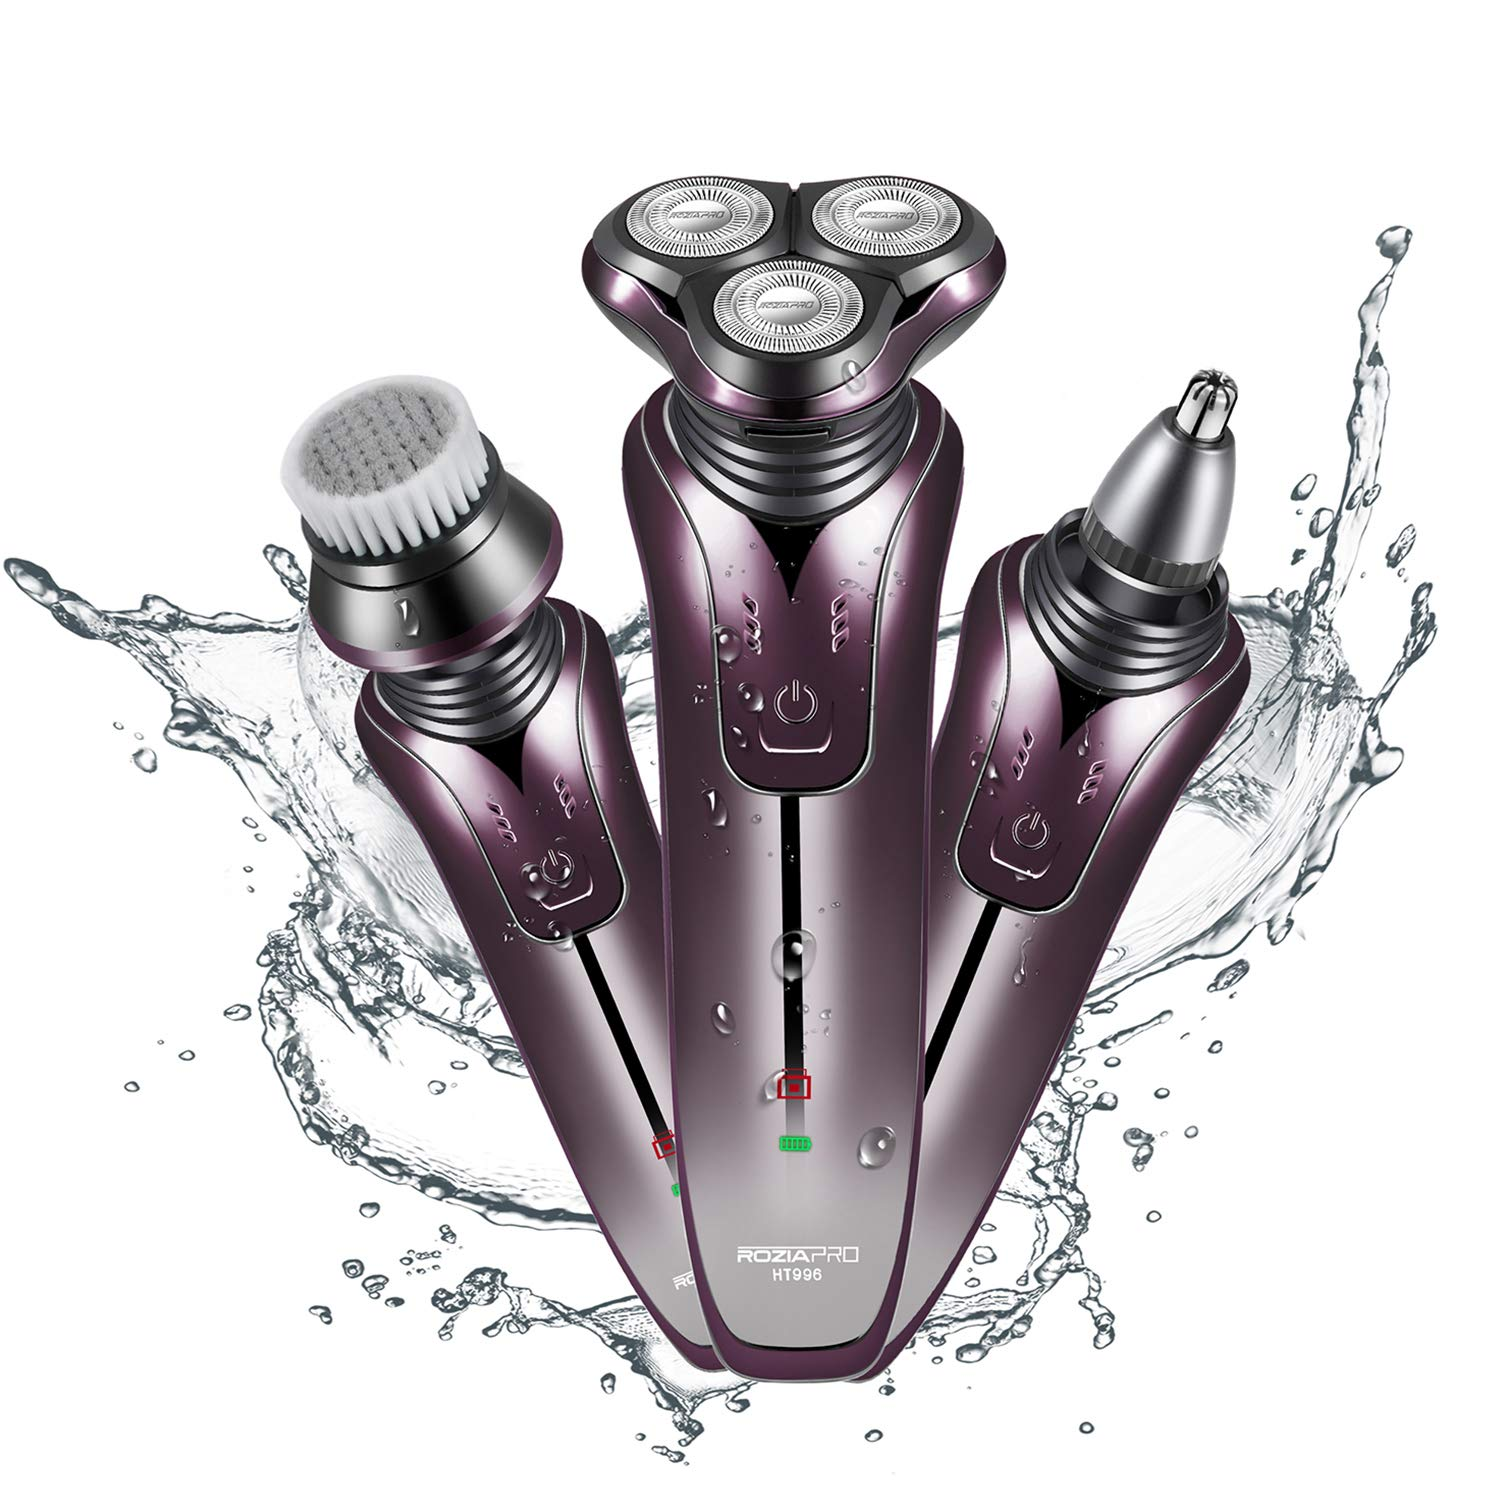 Electric Shaver Razor for Men Rechargeable Rotary Shaver Nose Trimmer Facial Cleaning Brush 3 in 1 Cordless Waterproof